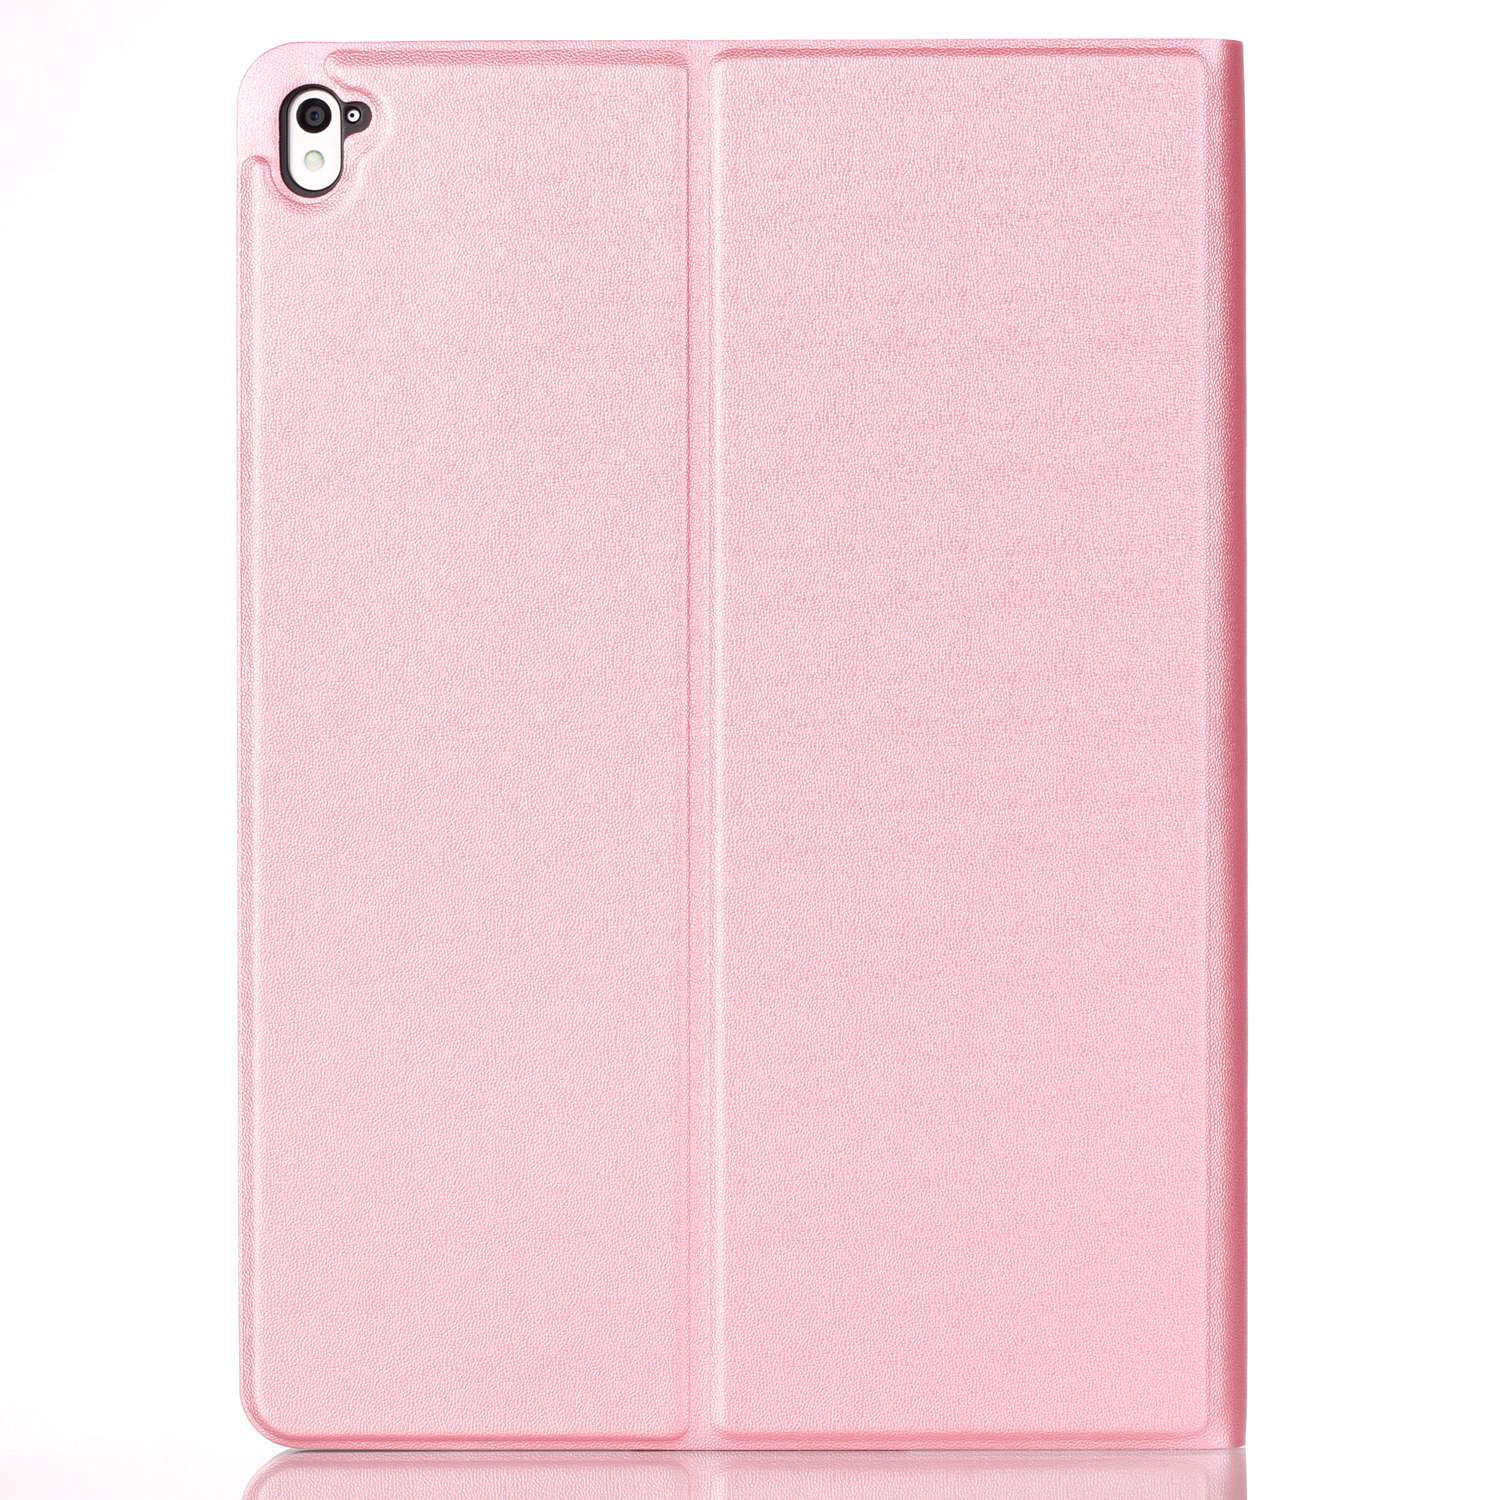 Custodia-Per-Apple-IPAD-Pro-IN-9-7-Pollici-Case-Cover-Protettiva-Skin-Shell miniatura 23